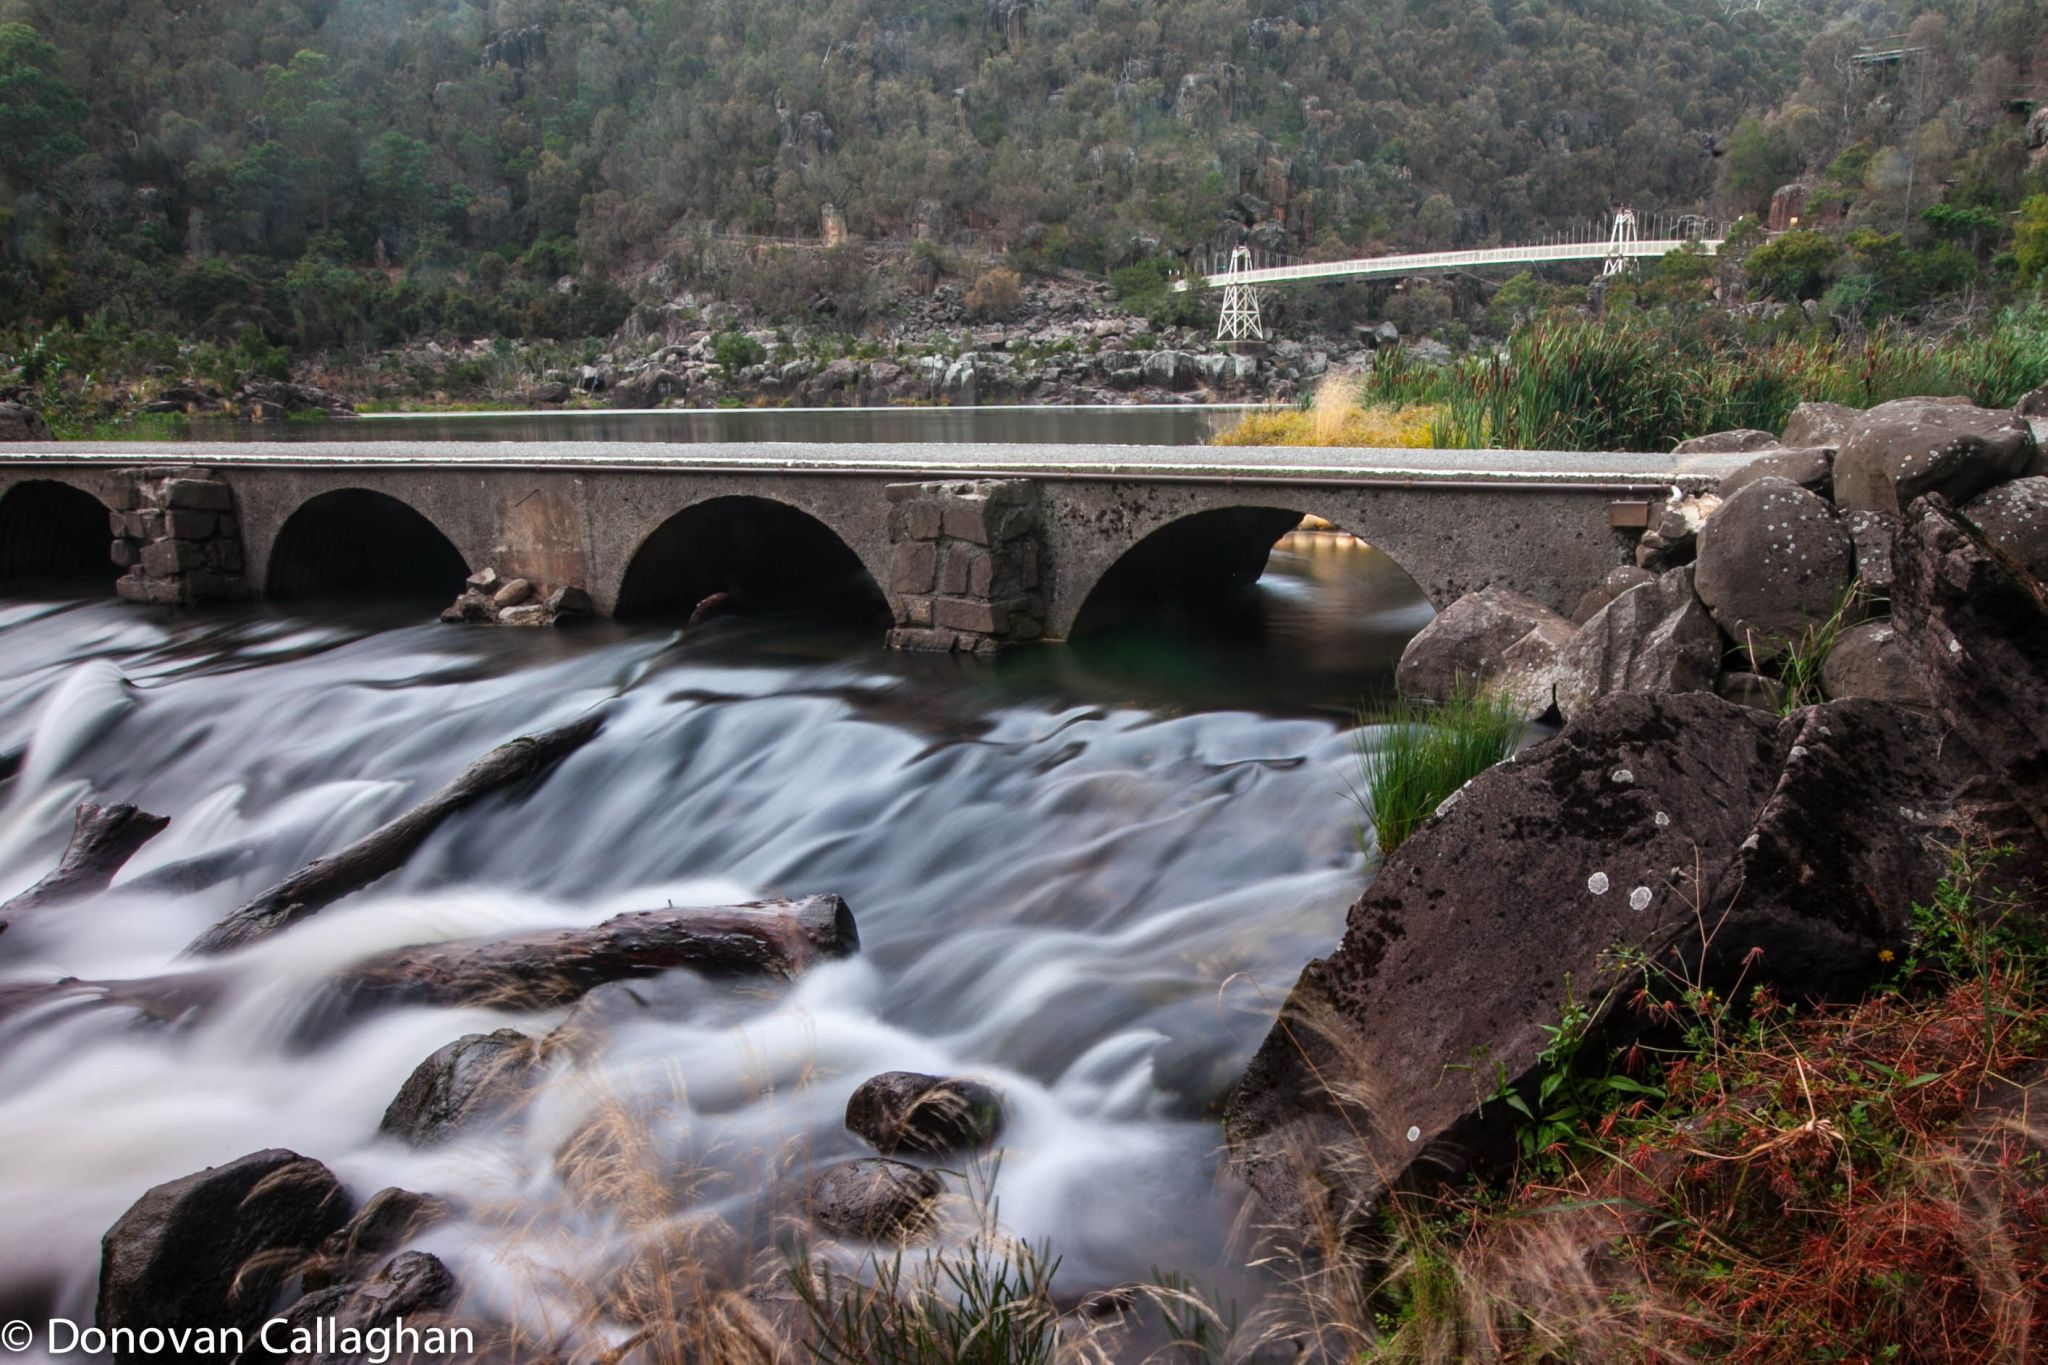 Cataract Gorge Launceston Tasmania, Australia